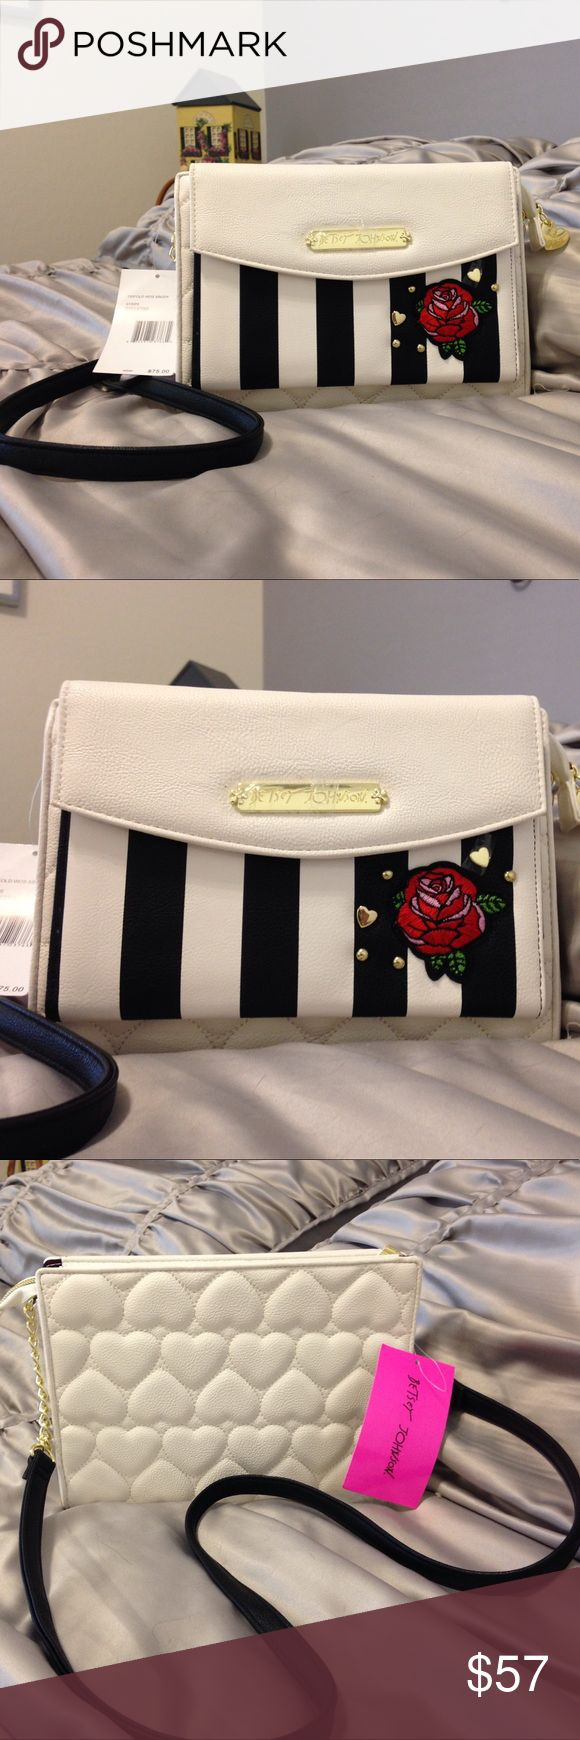 NEW -Betsey Johnson shoulder bag w/built-in wallet NEW -Betsey Johnson shoulder bag w/built-in wallet. Super cute and fun, this white and black striped shoulder bag has embroidered rose detail, built-in wallet and beautiful padded heart pattern on back and bottom. It has a zipper compartment for larger items and large wallet to hold many items. It measures 9 1/2 inches across, 7 inches high and 2 inches wide including wallet. Shoulder strap has partial chain. This is the first time I've seen…